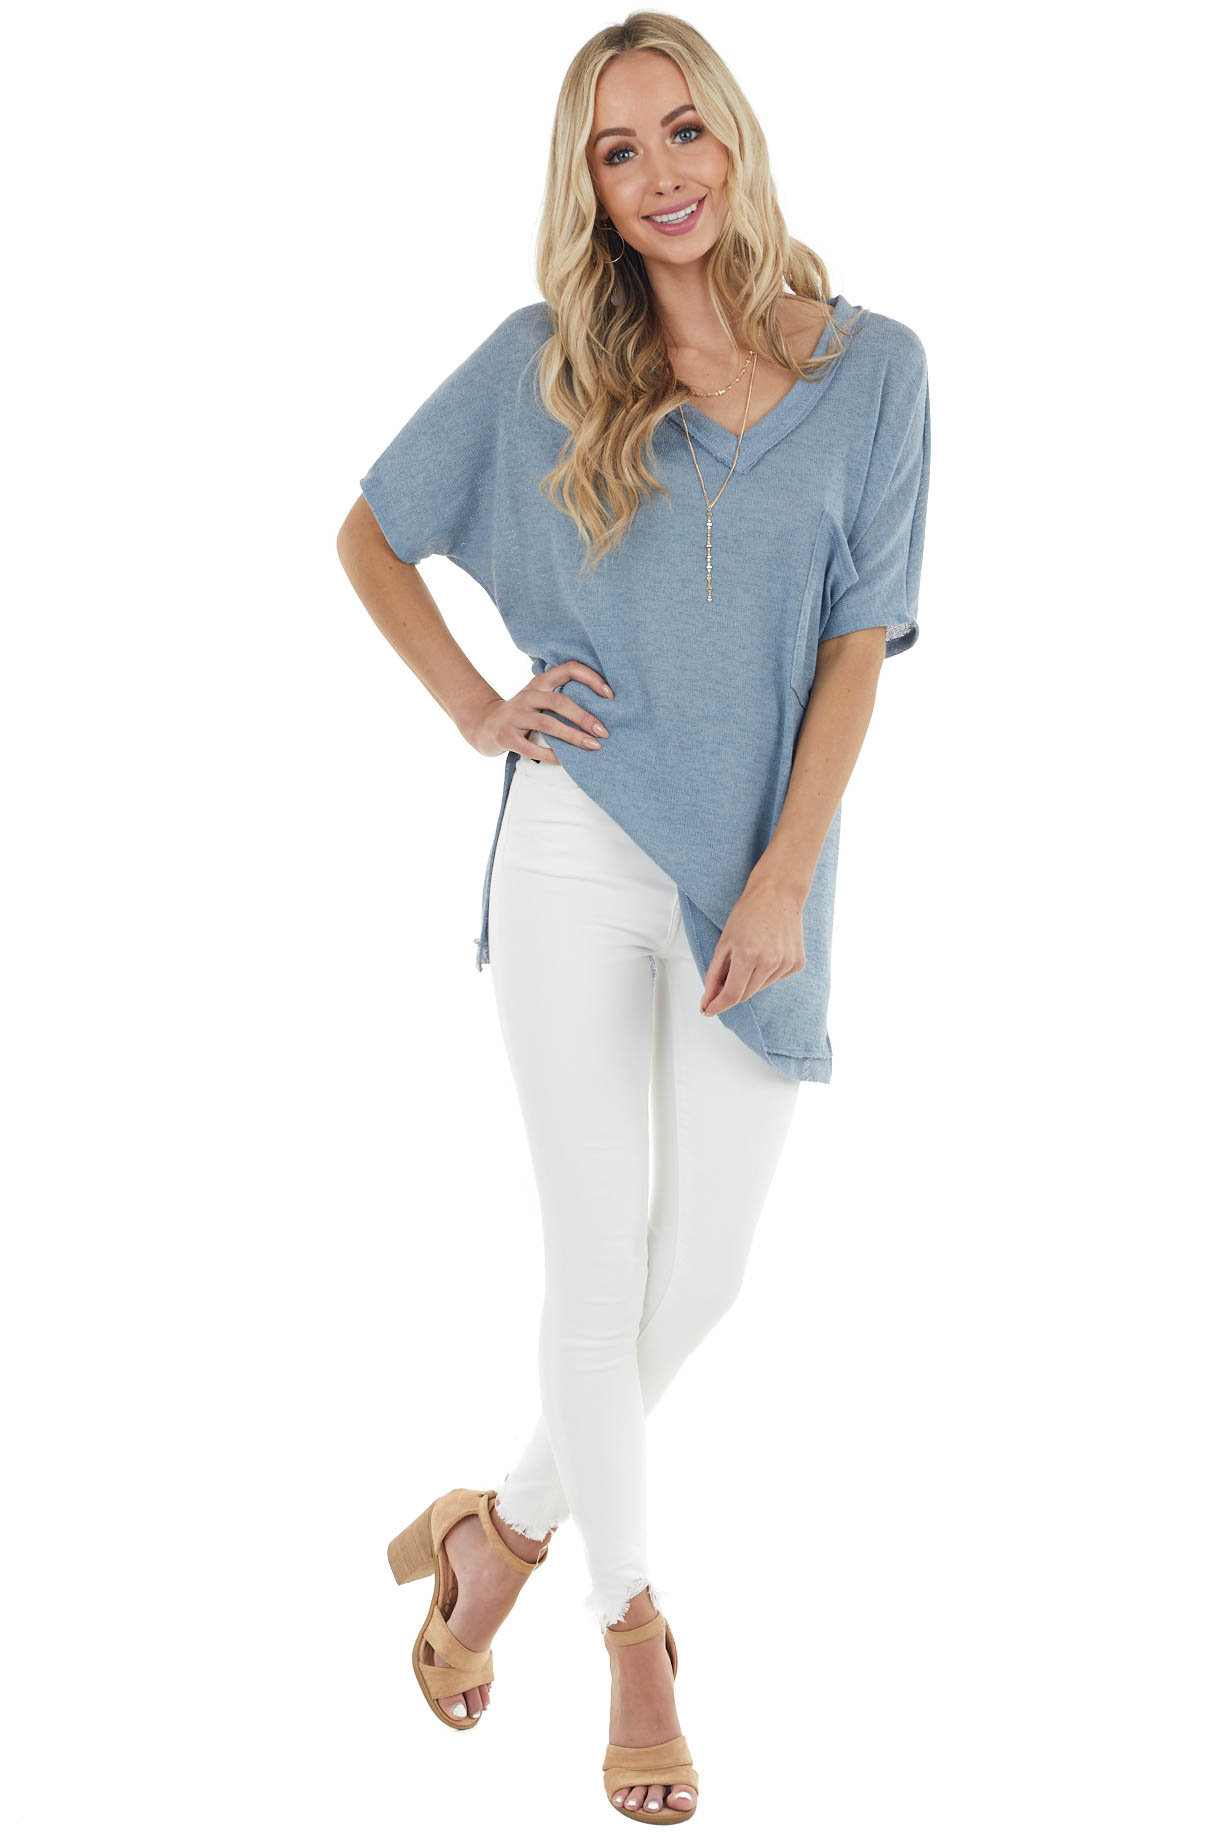 Dusty Blue Loose Fit Short Sleeve Knit Top with Front Pocket